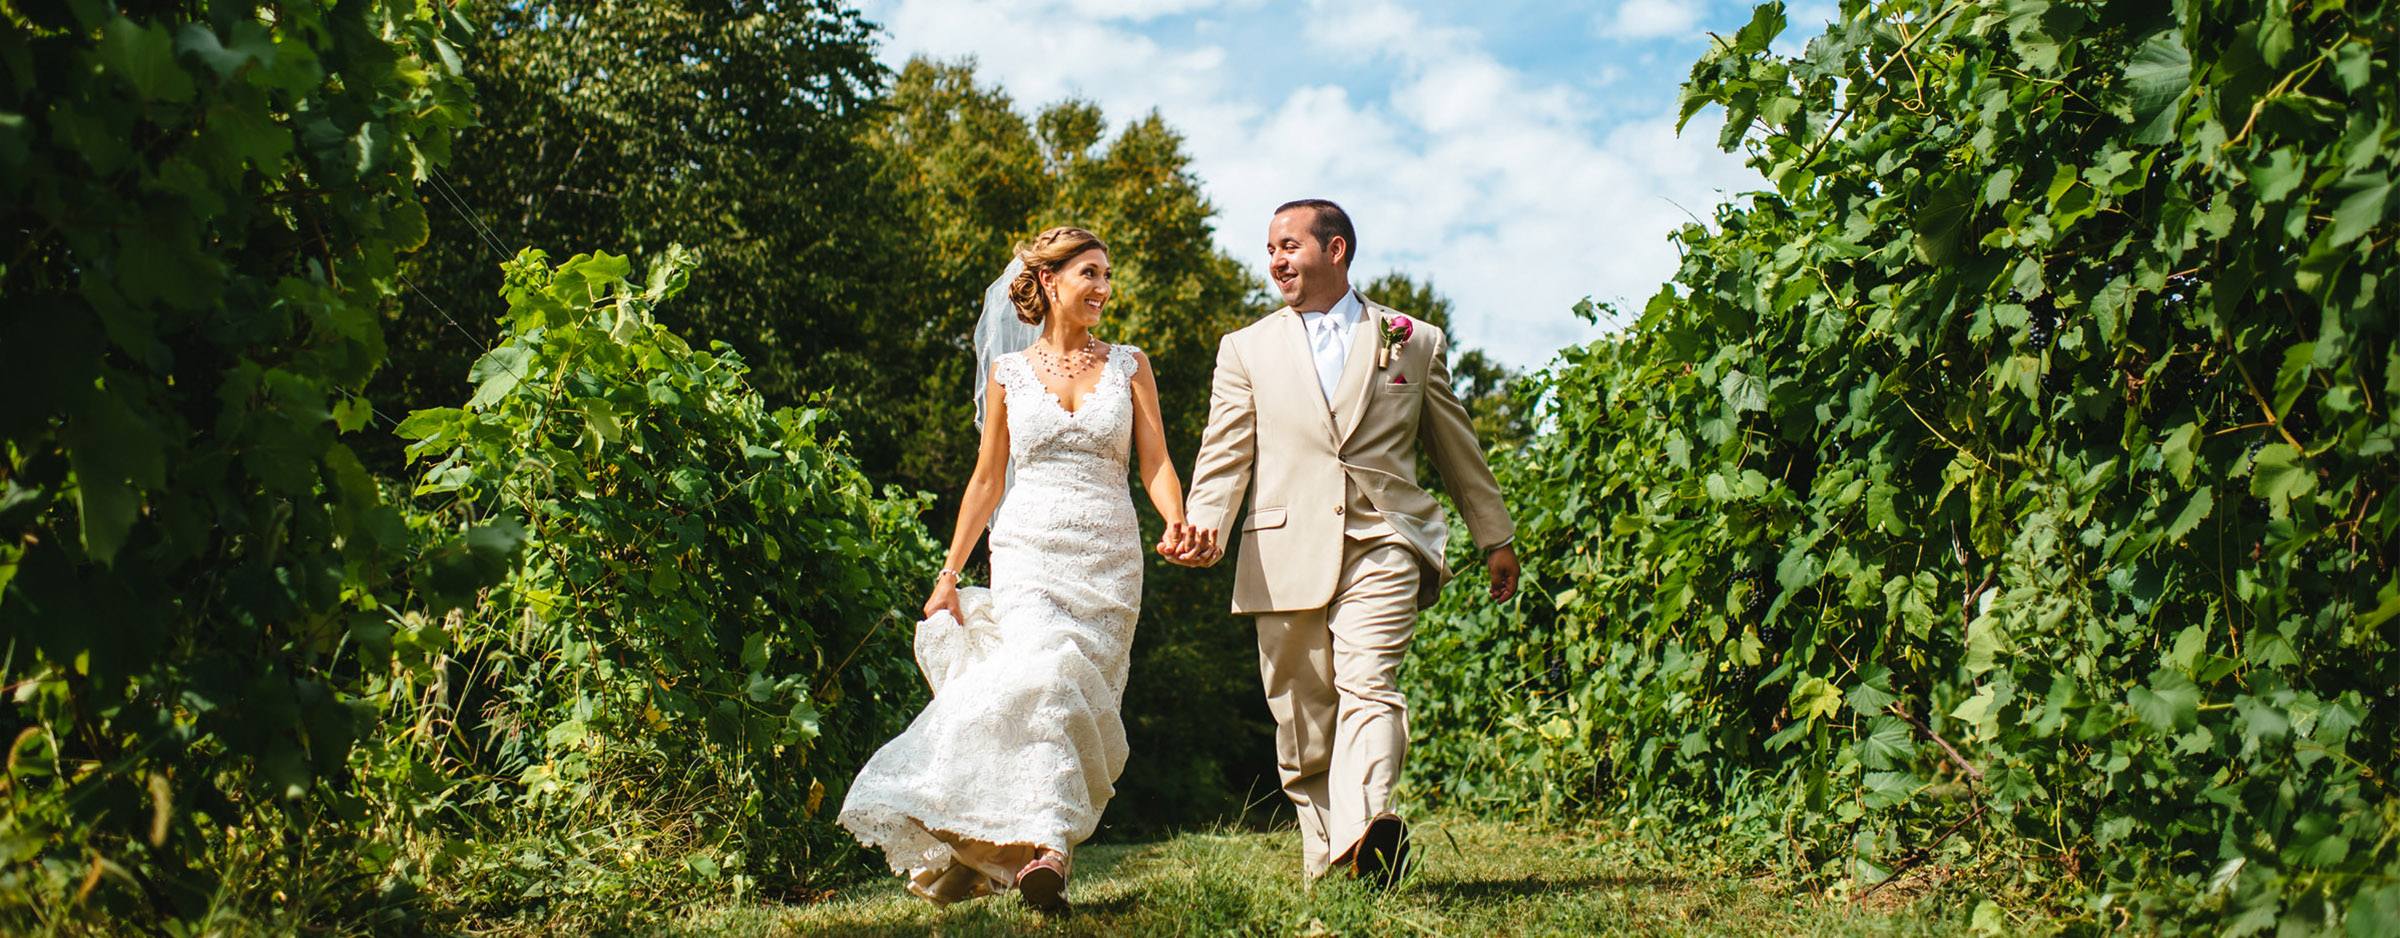 Preston Ridge Vineyard Outdoor Summer Wedding CT